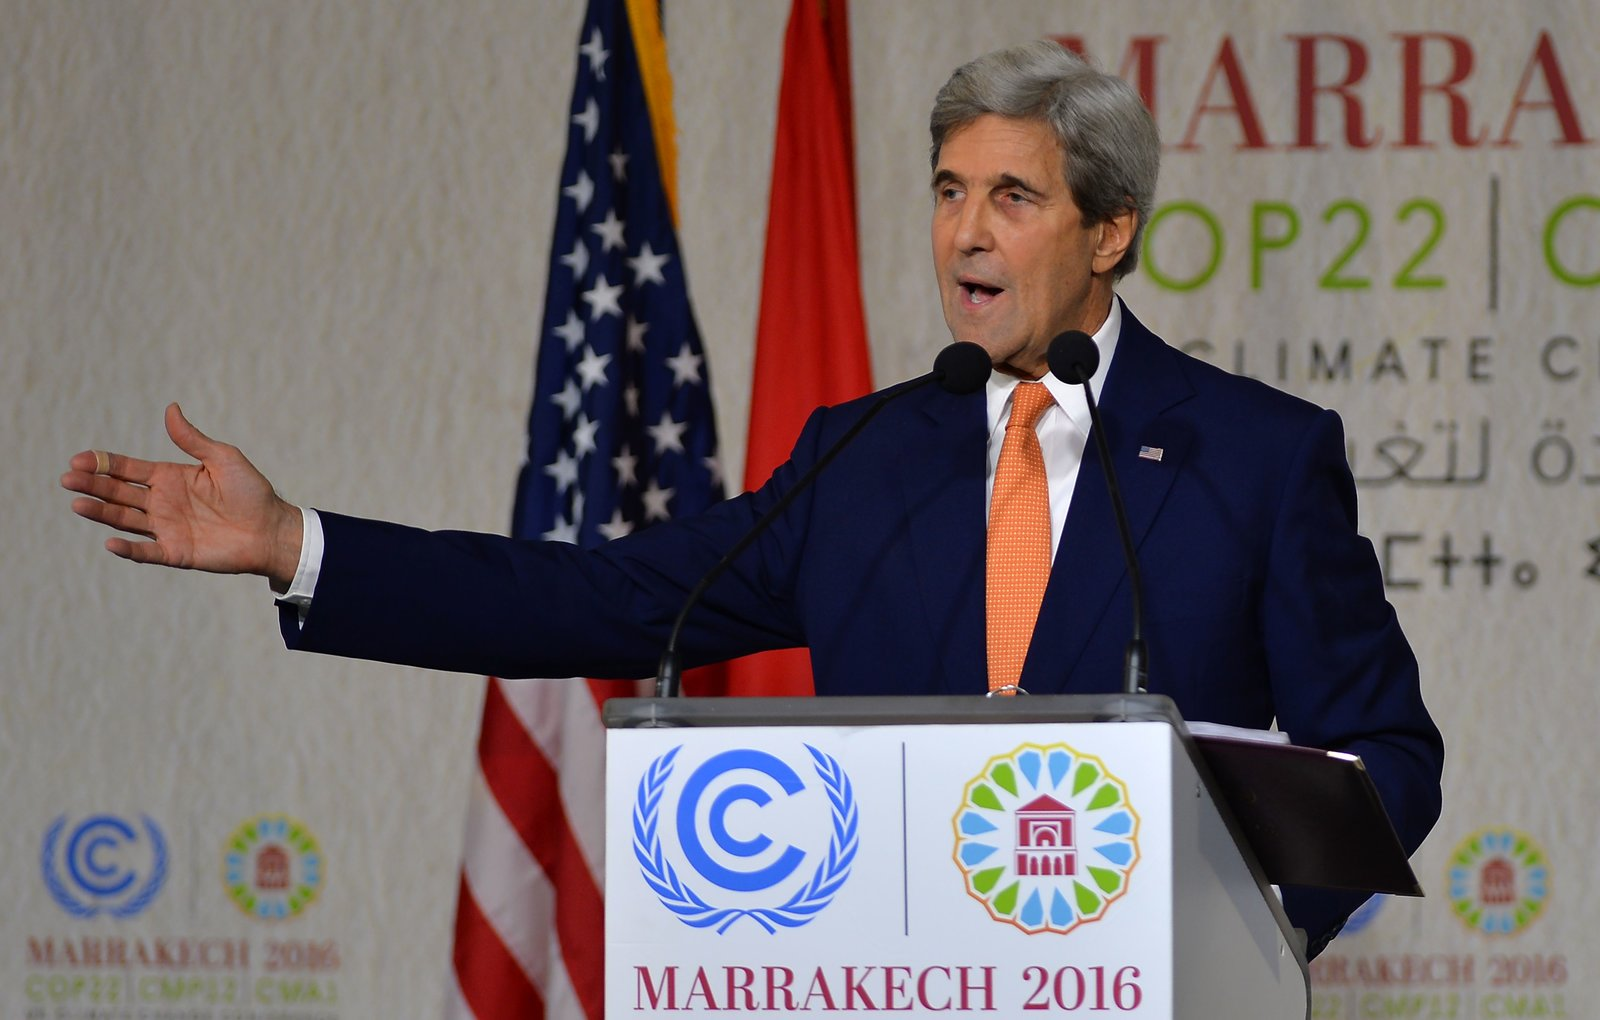 Secretary of State John Kerry speaks to the climate delegates at COP22